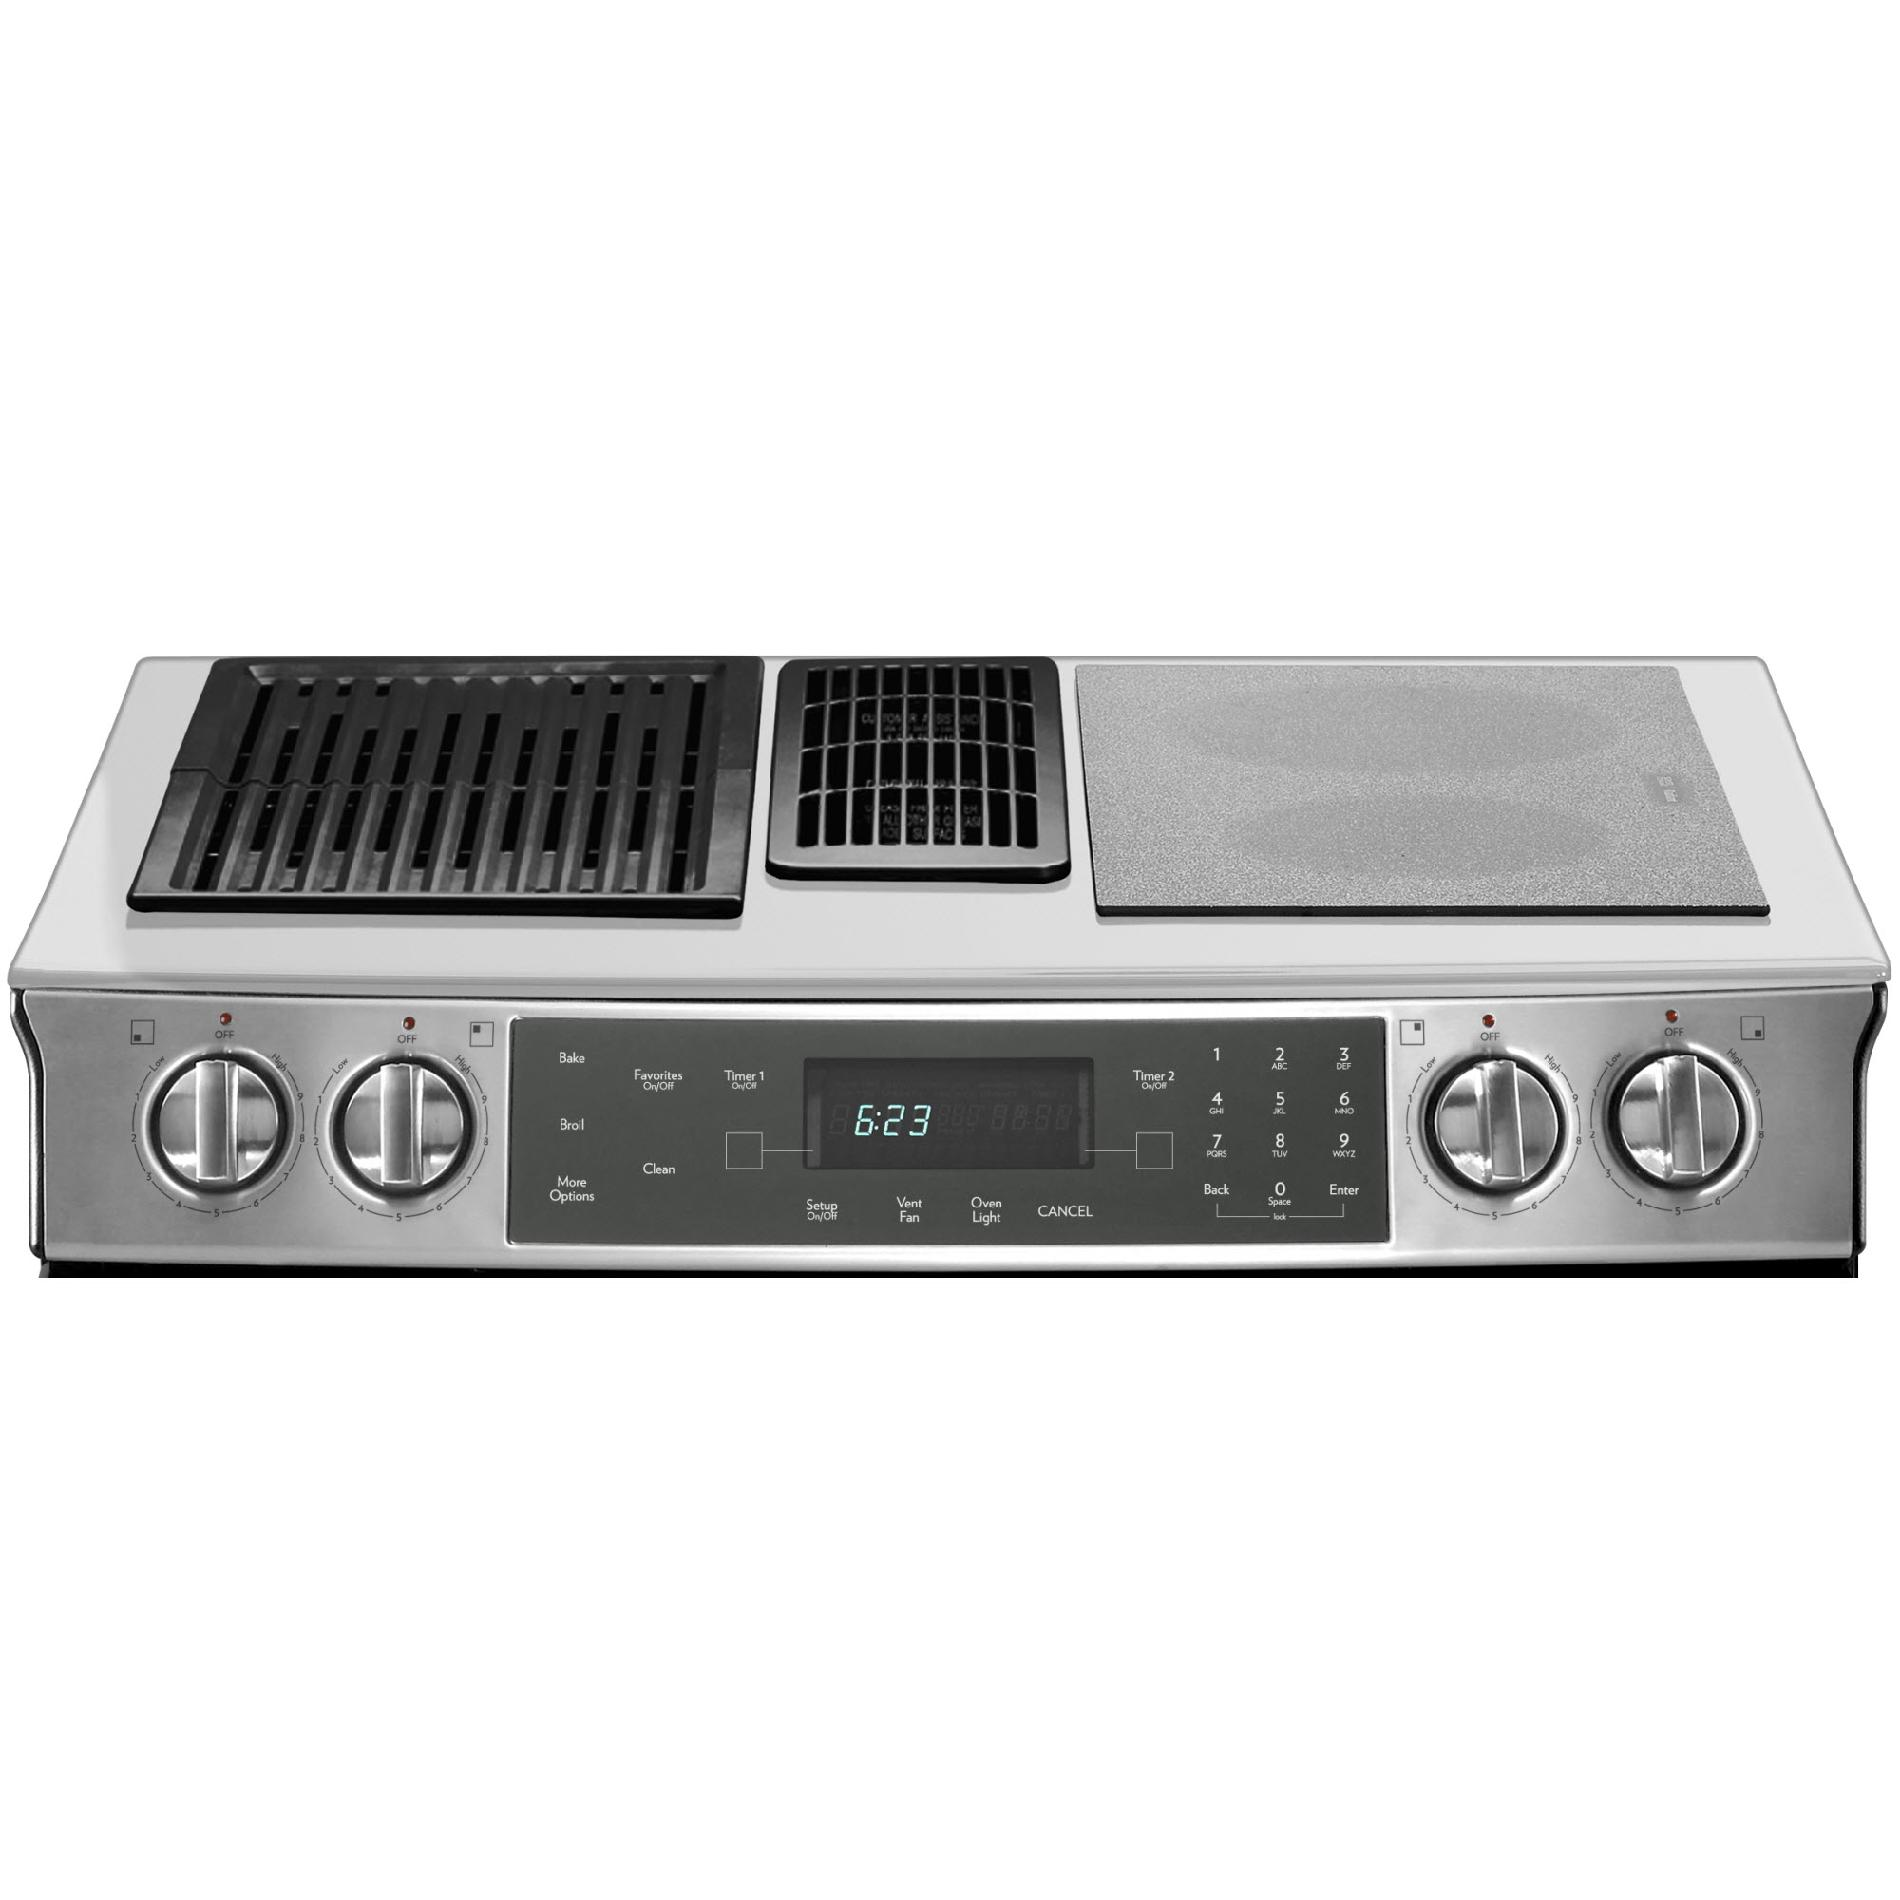 "Jenn-Air 30"" Slide-In Modular Electric Downdraft Range"